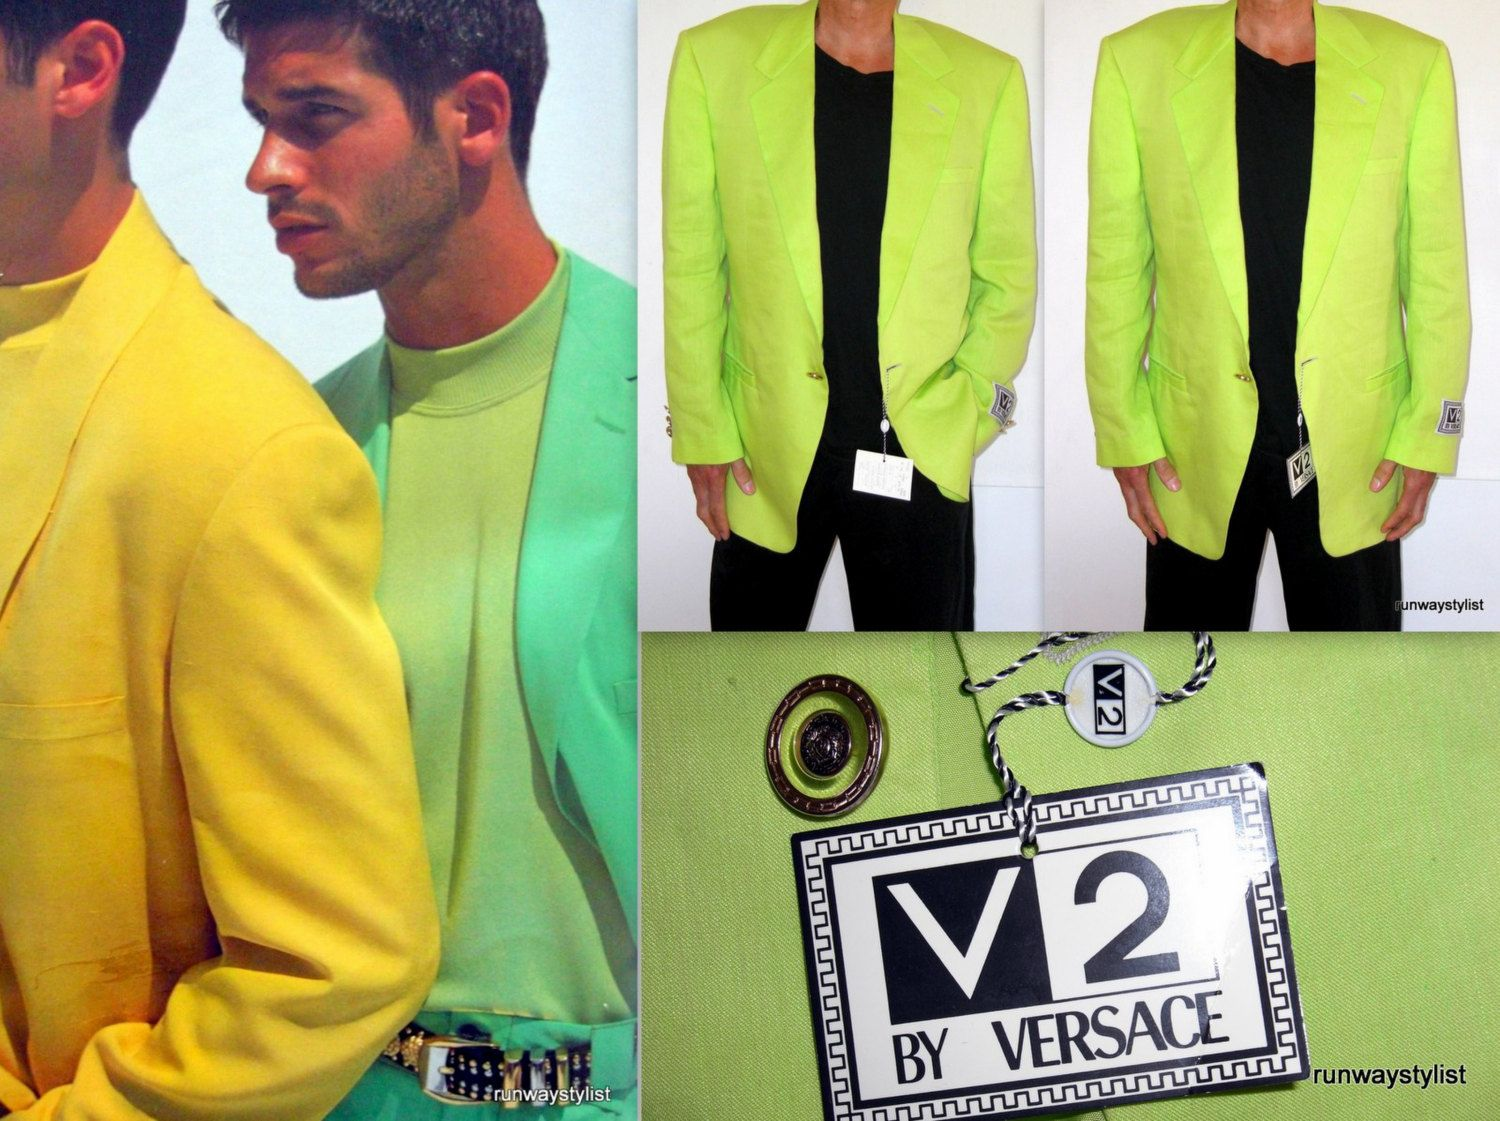 Gianni Versace For Versace V2 Medusa Head Electric Lime Green Men\'s ...